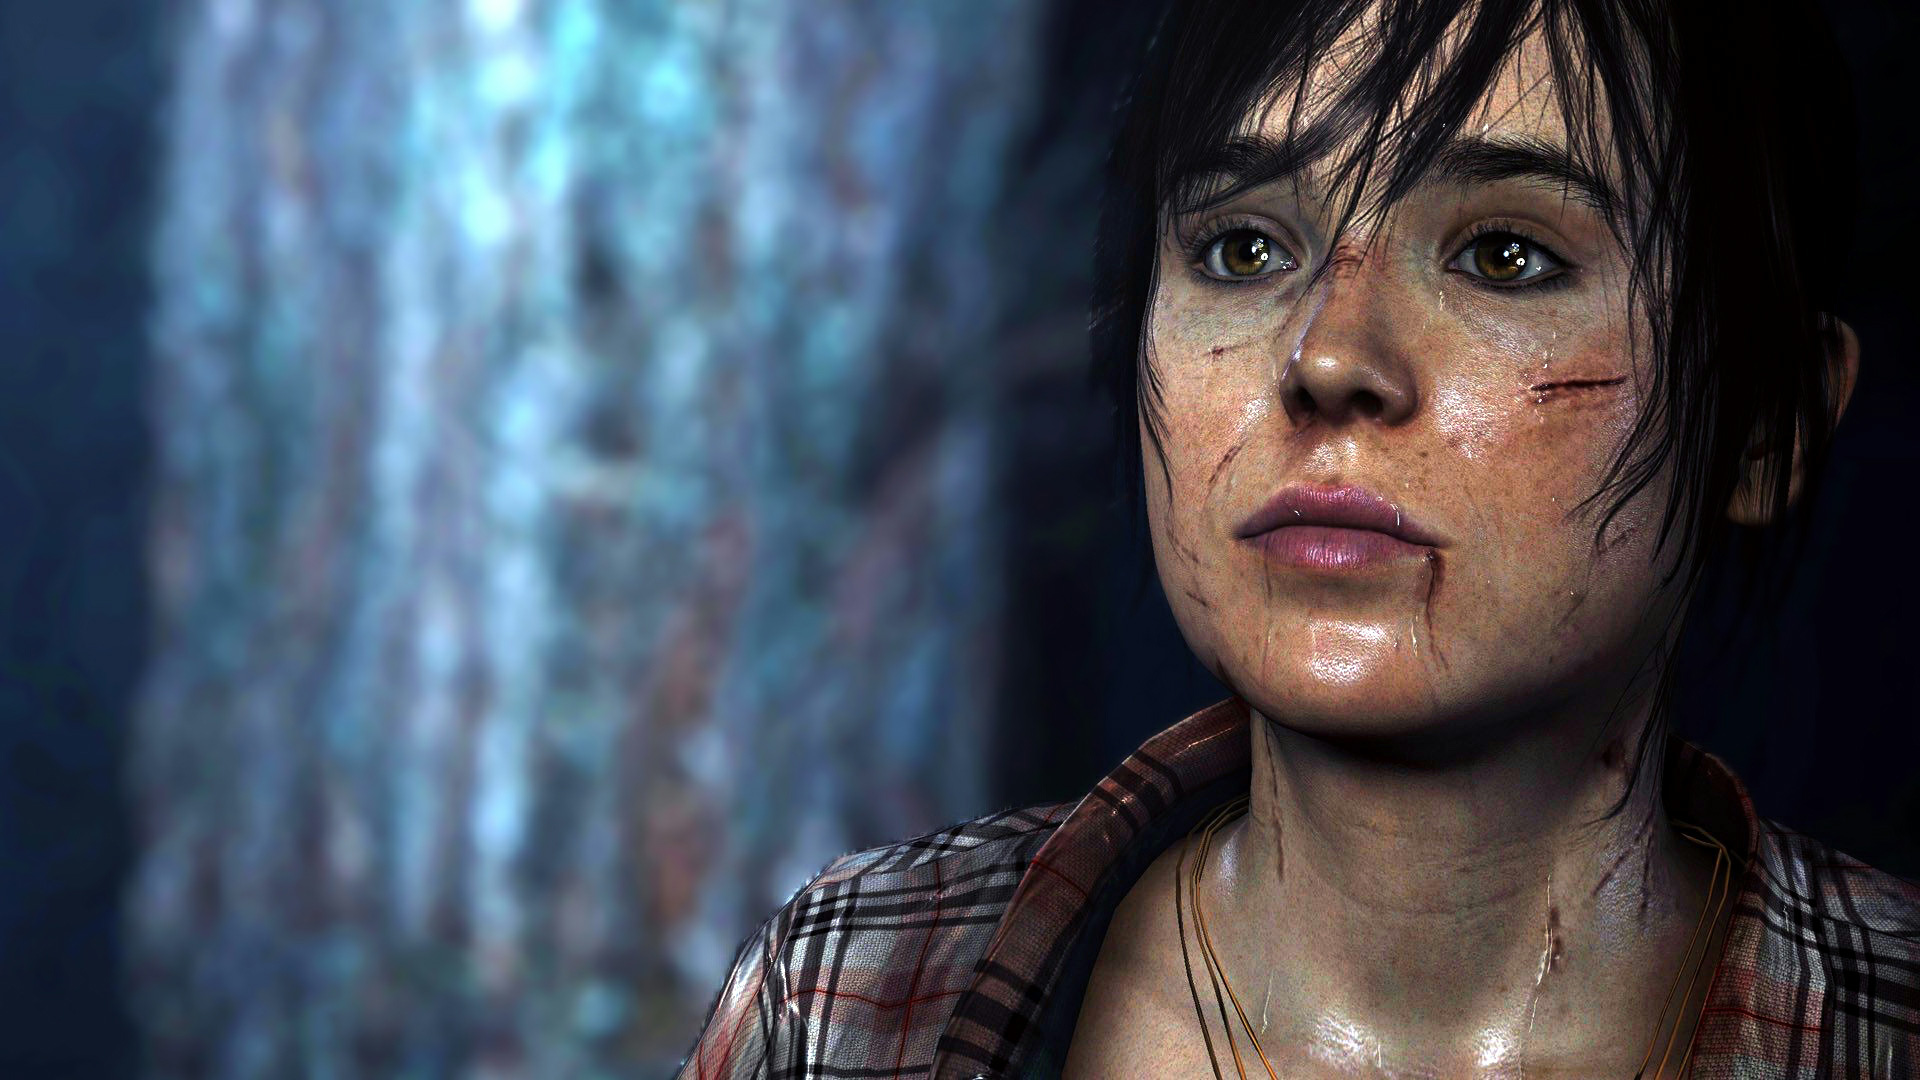 LagZero Analiza: Beyond Two Souls [1,2,3... he comes for you]